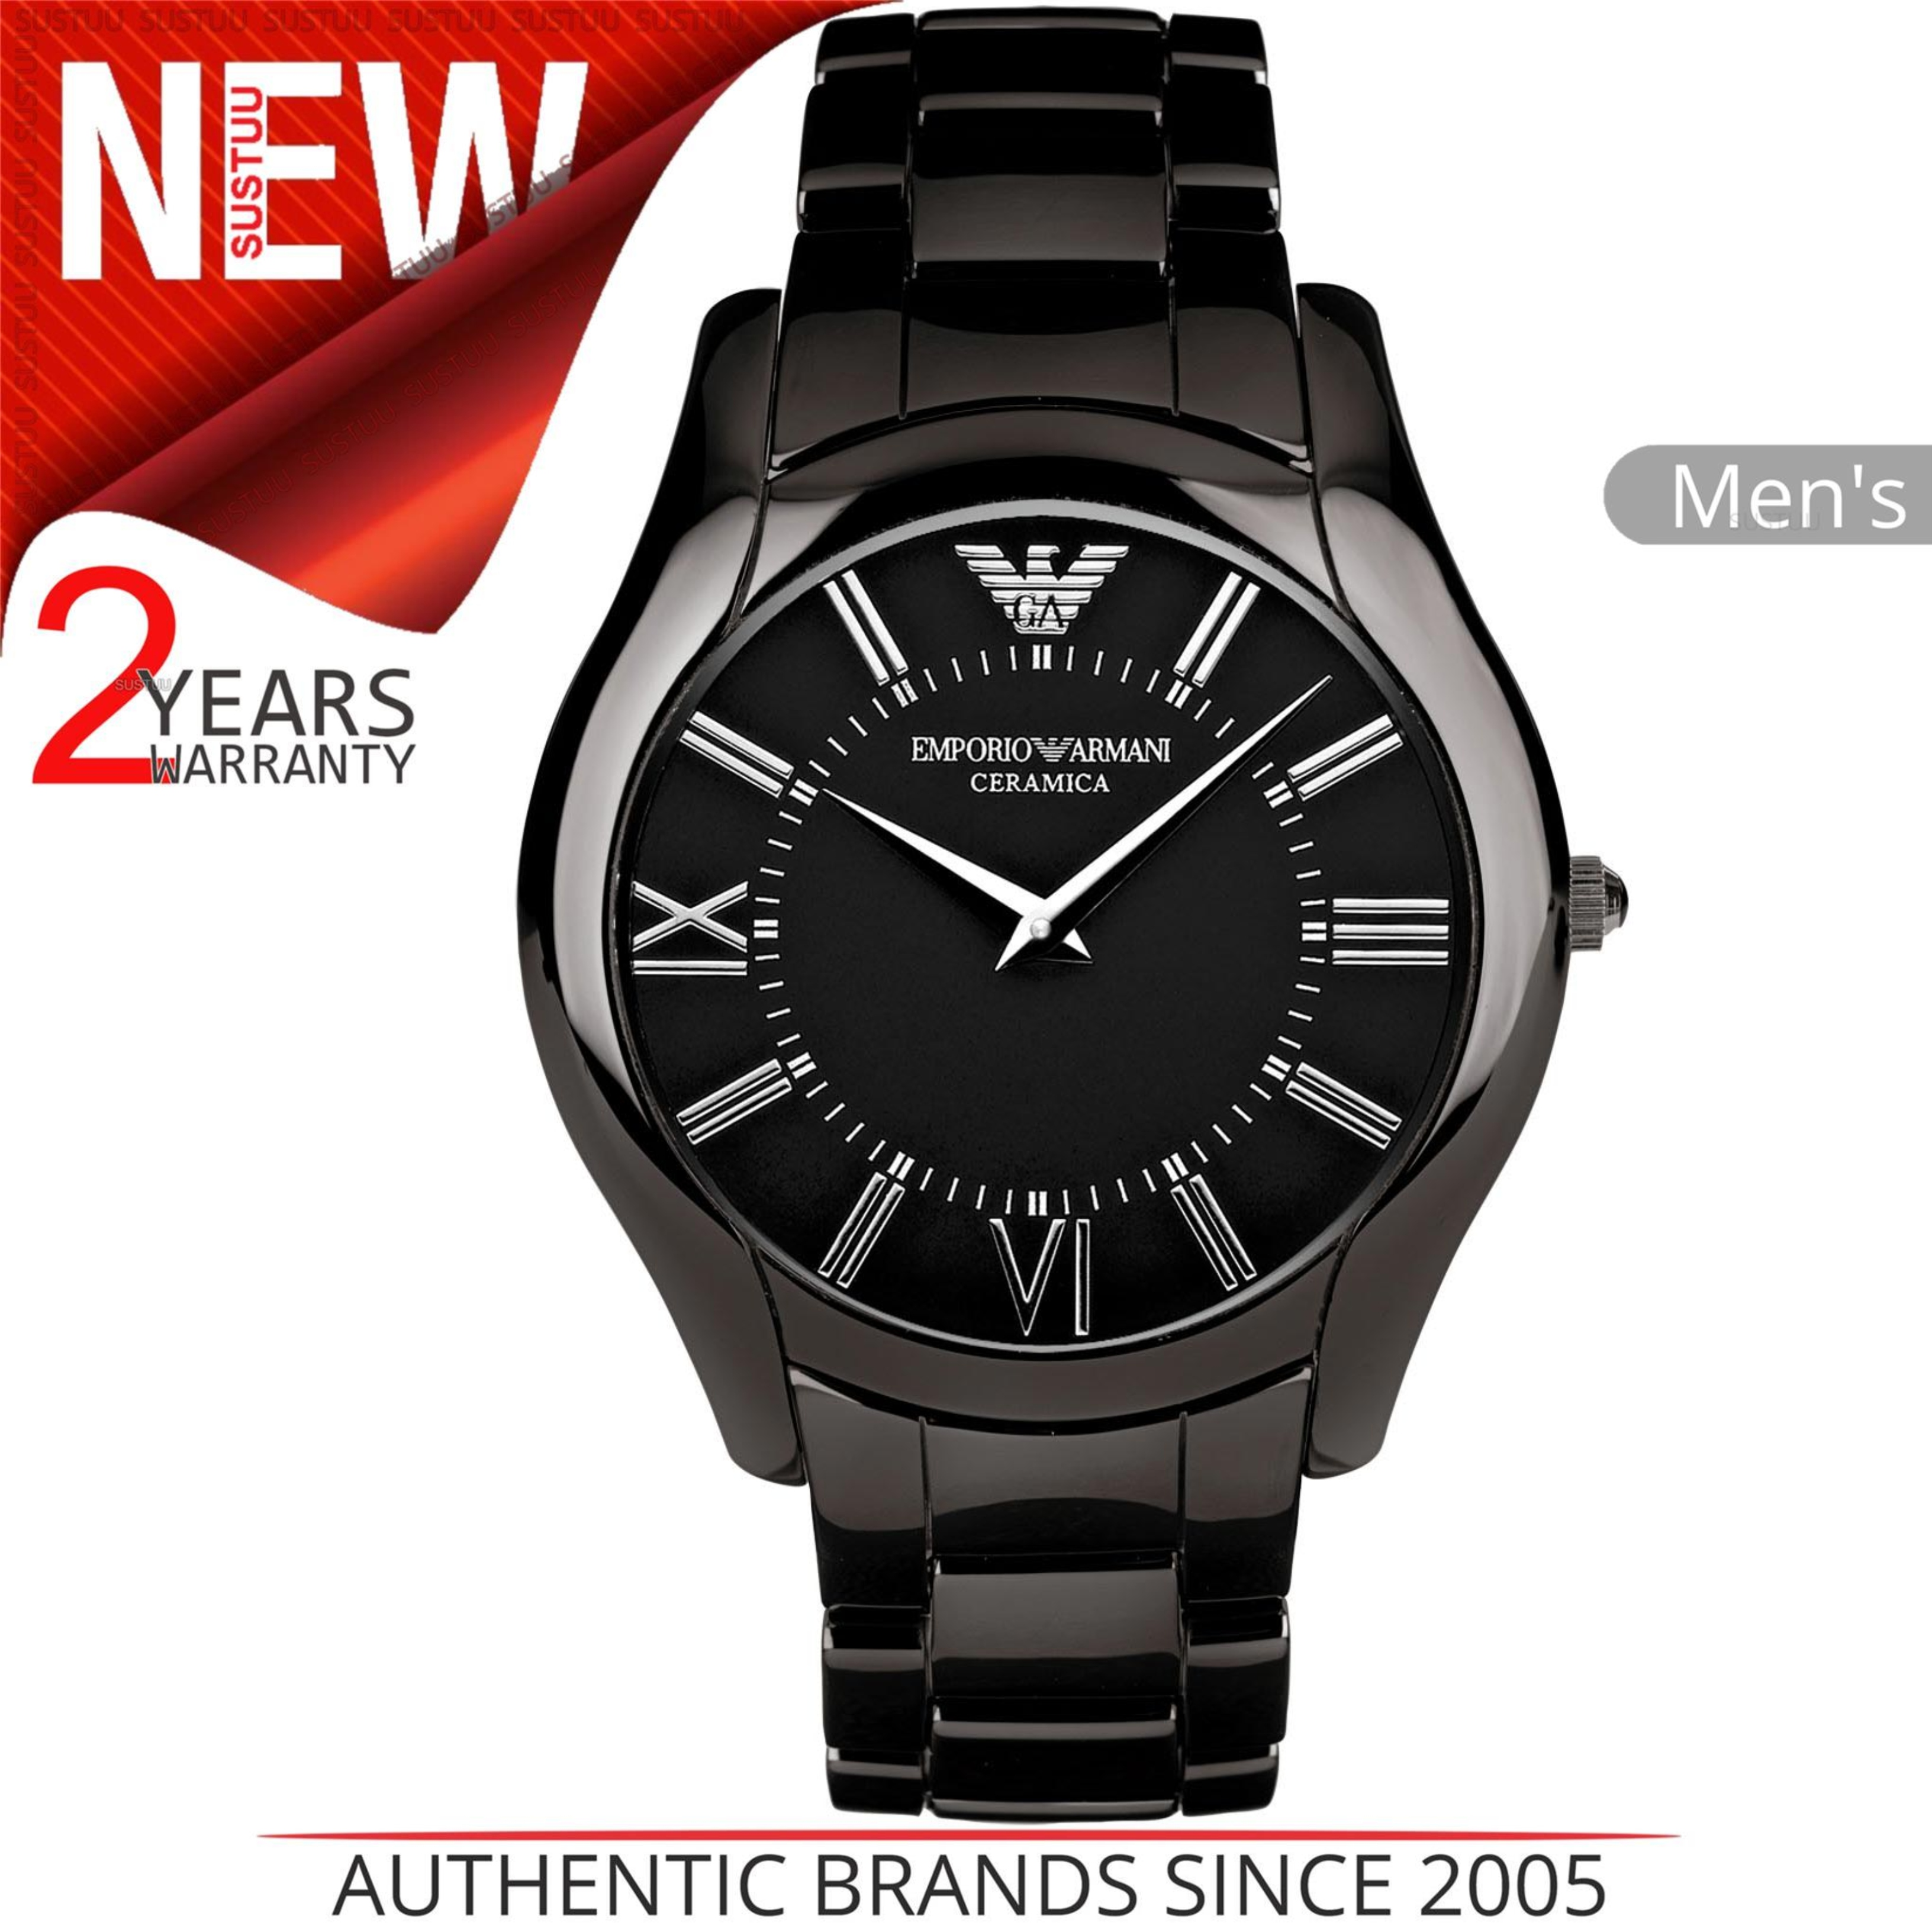 86bb38164ae8 Details about Emporio Armani Ceramica Men s Slim Watch│Black Dial│Ceramic  Bracelet Band│AR1440